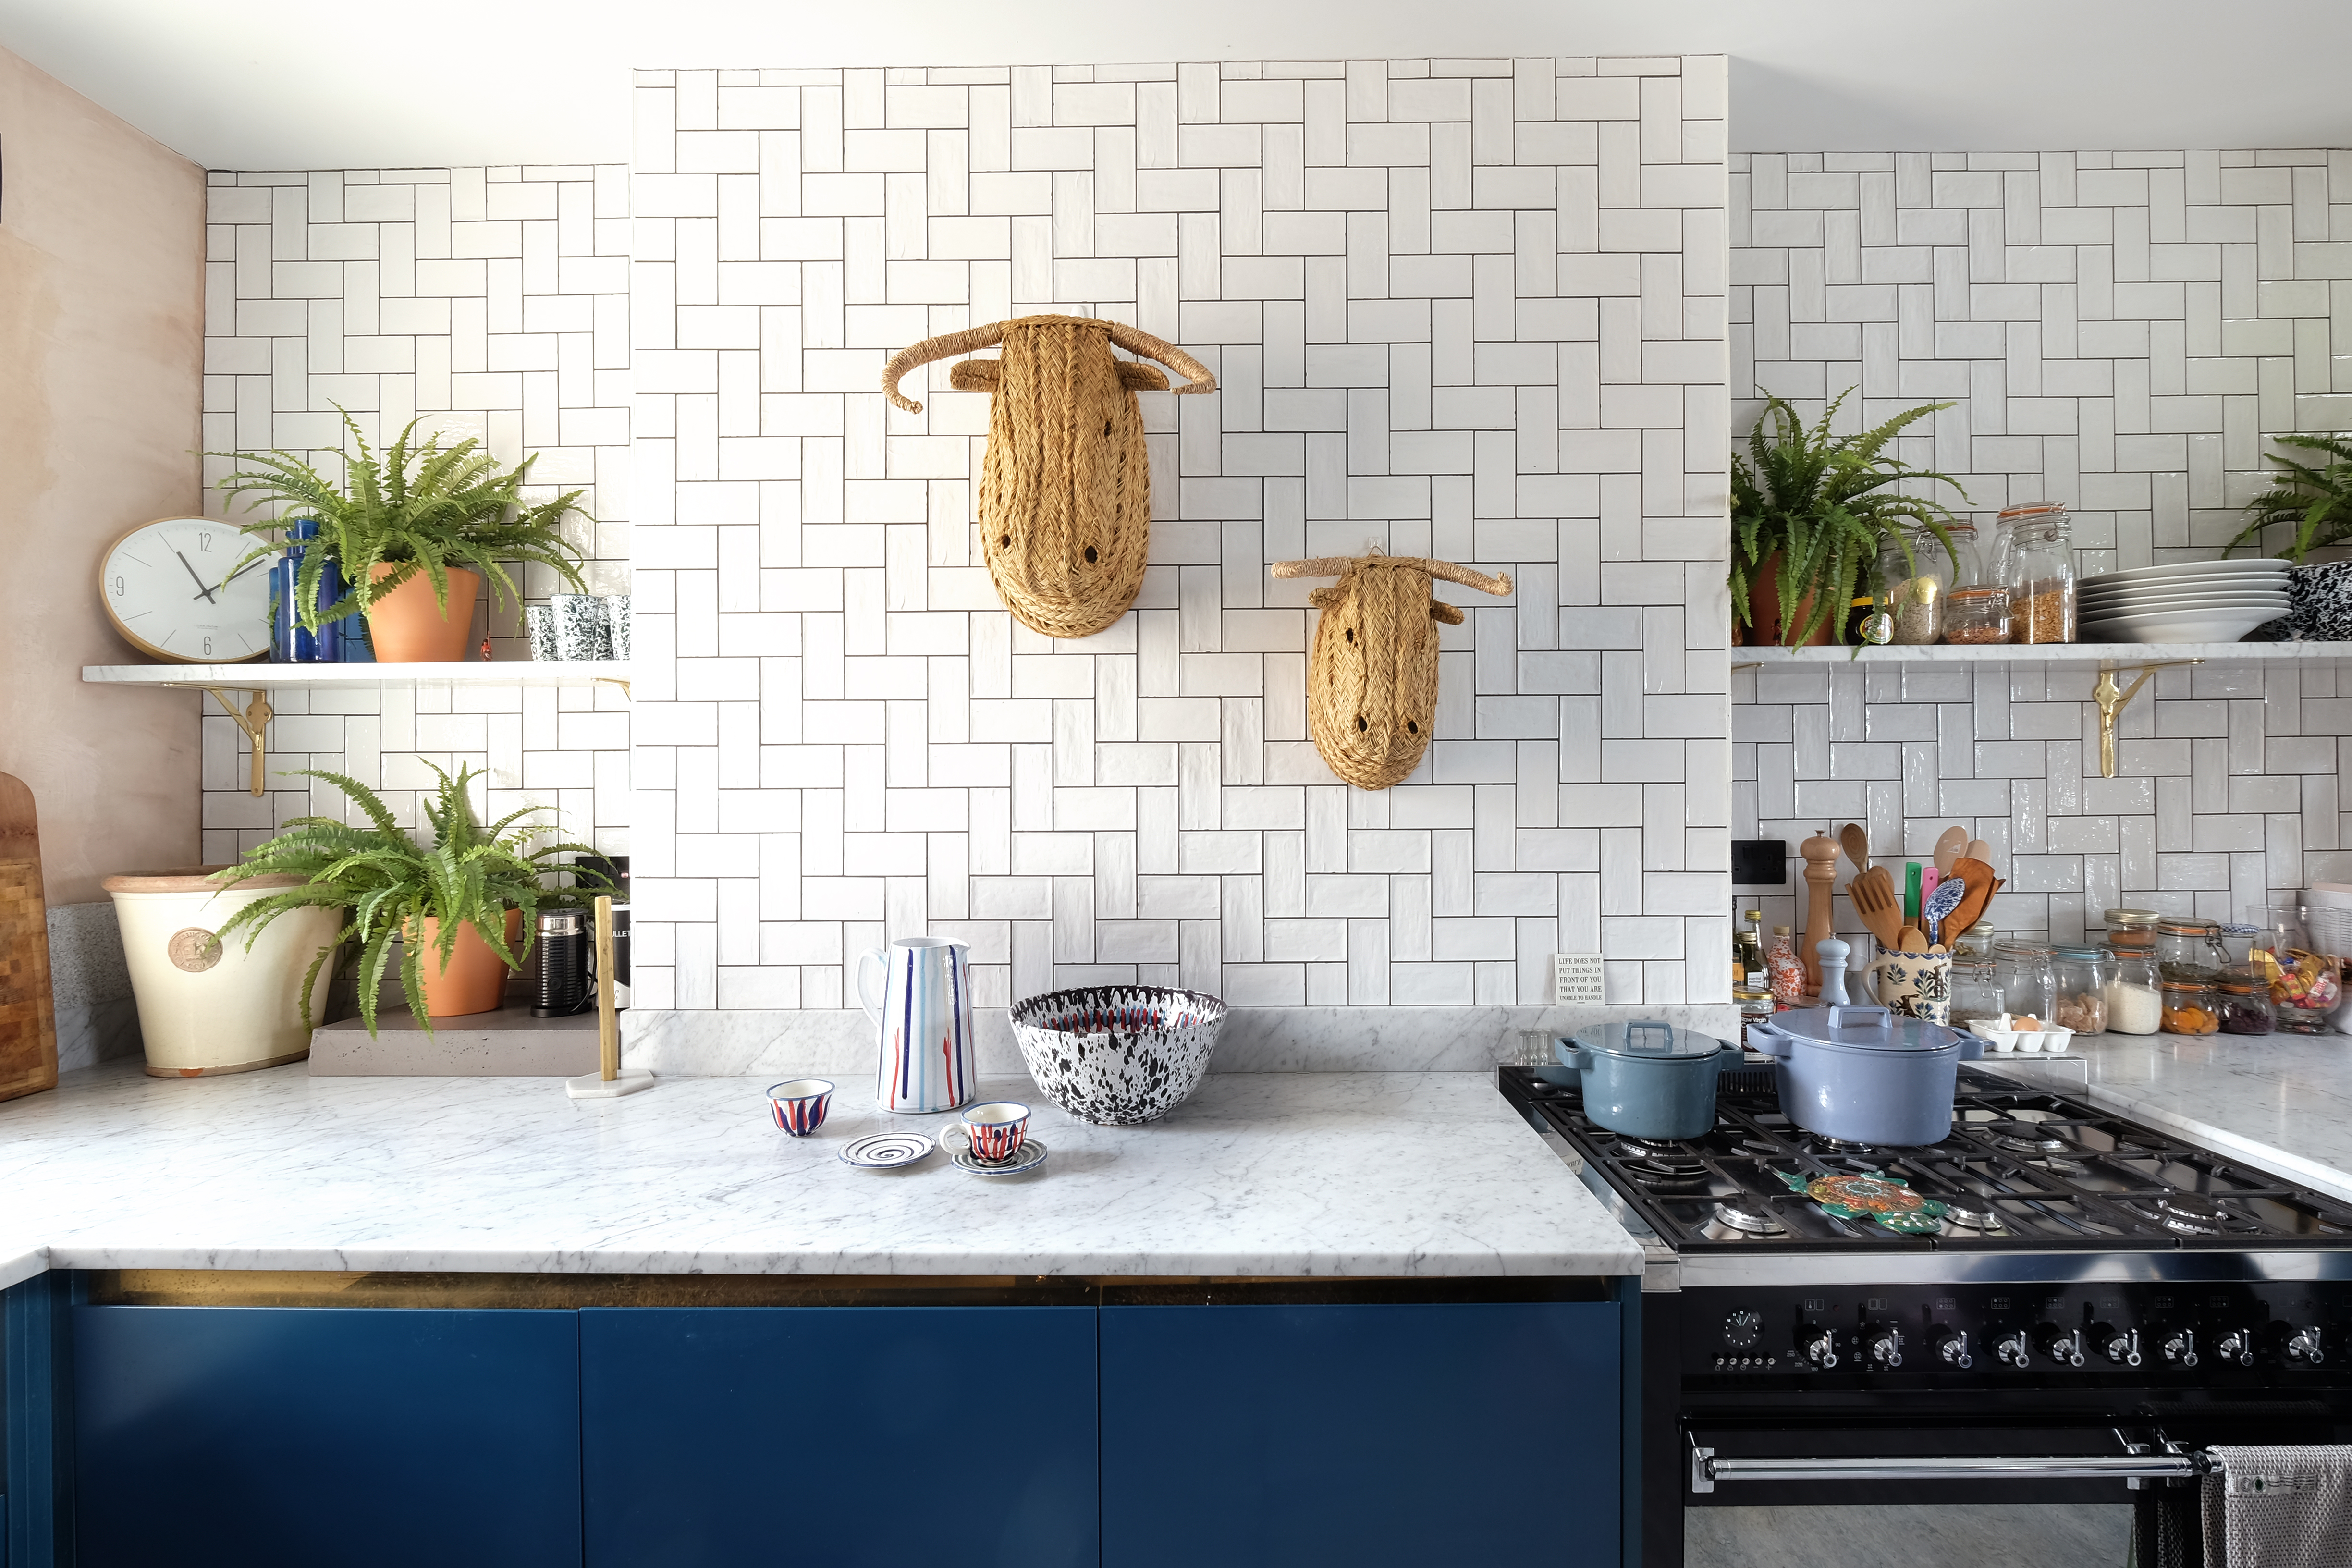 Kitchen Design Trends In 2018 5 Kitchen Design Trends To Watch For In 2018 Kitchn